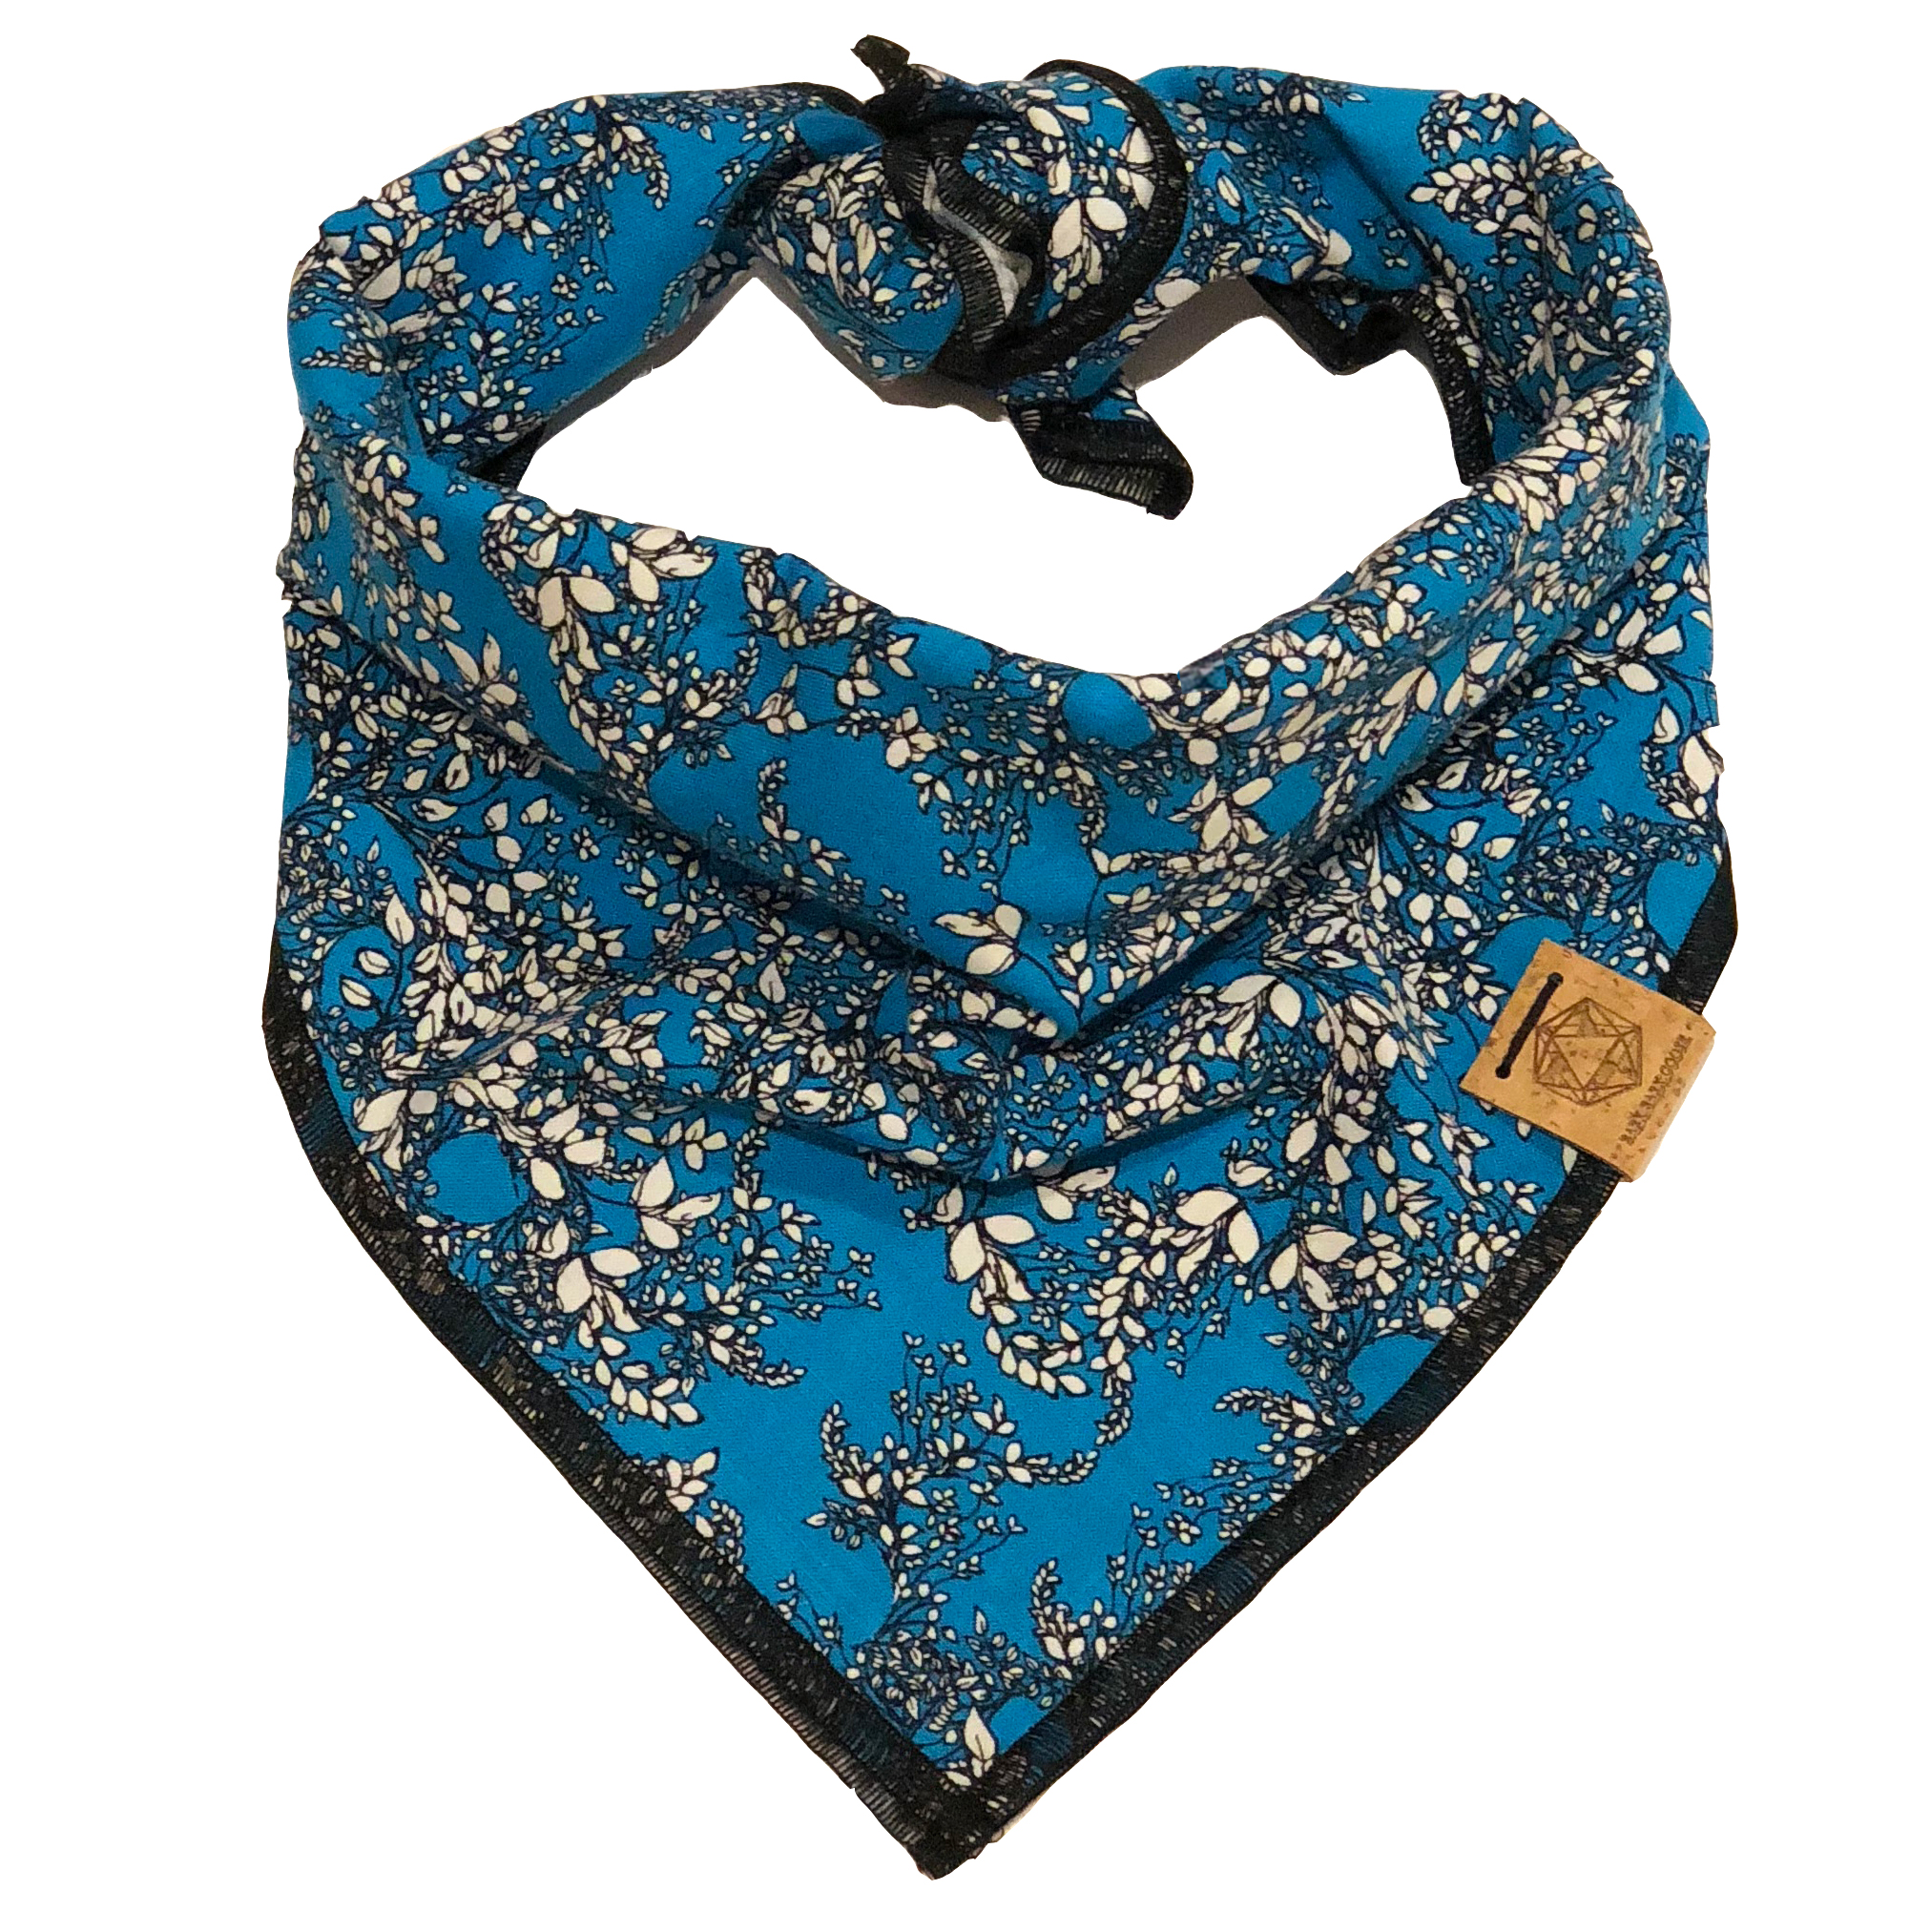 blue-with-white-flowers-dog-bandana.jpg